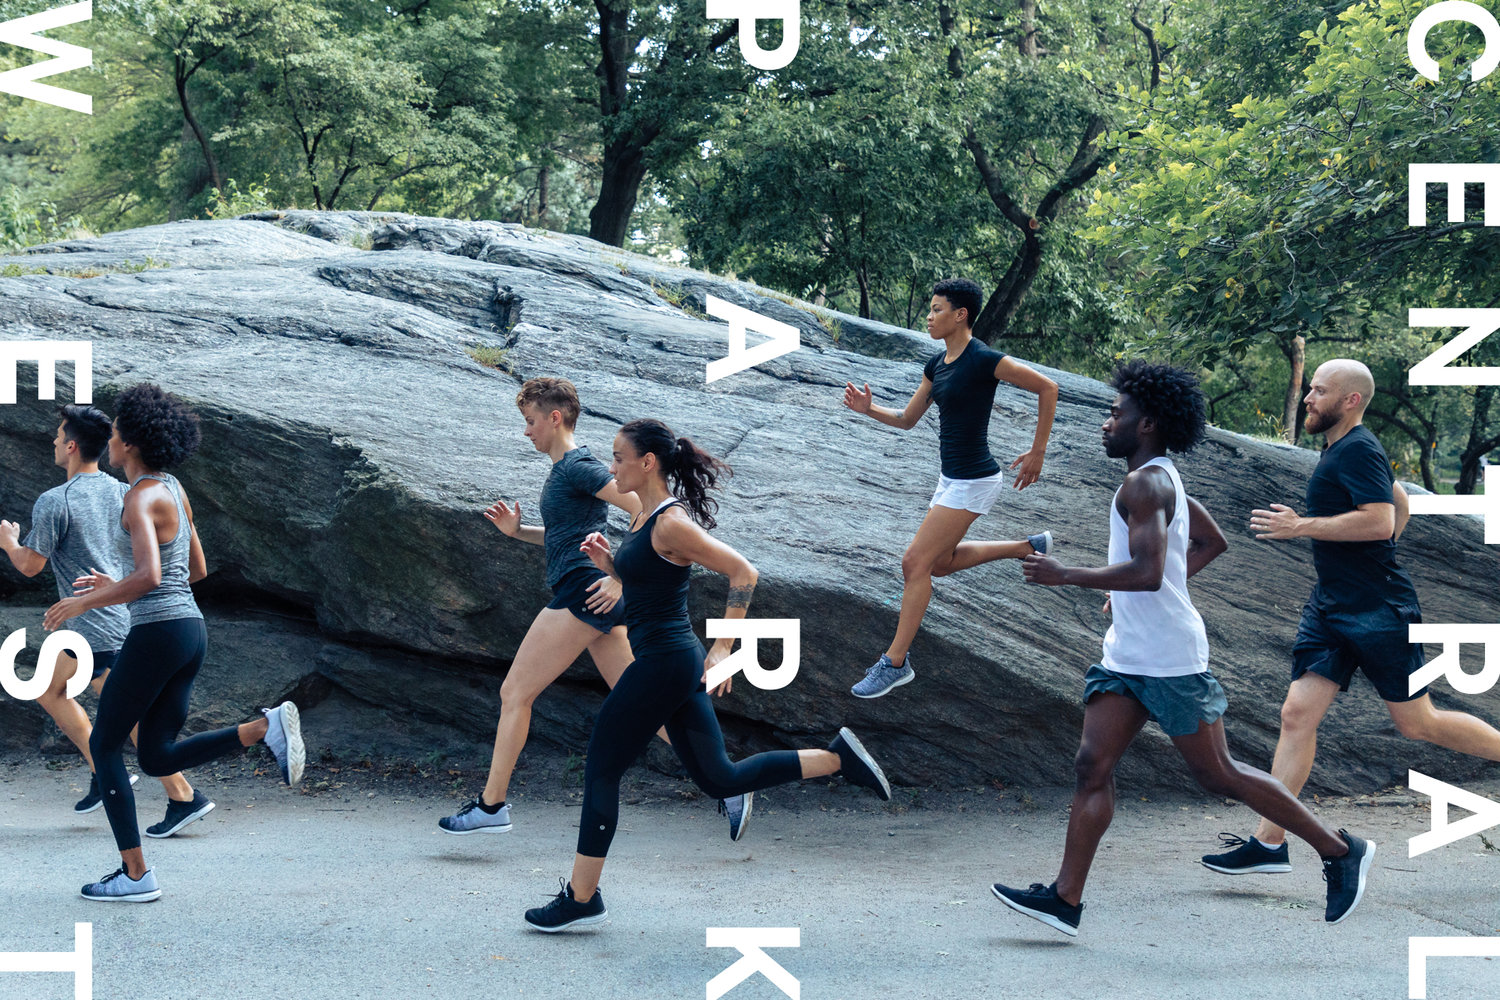 Run lifestyle photoshoot and art direction for lululemon new york city